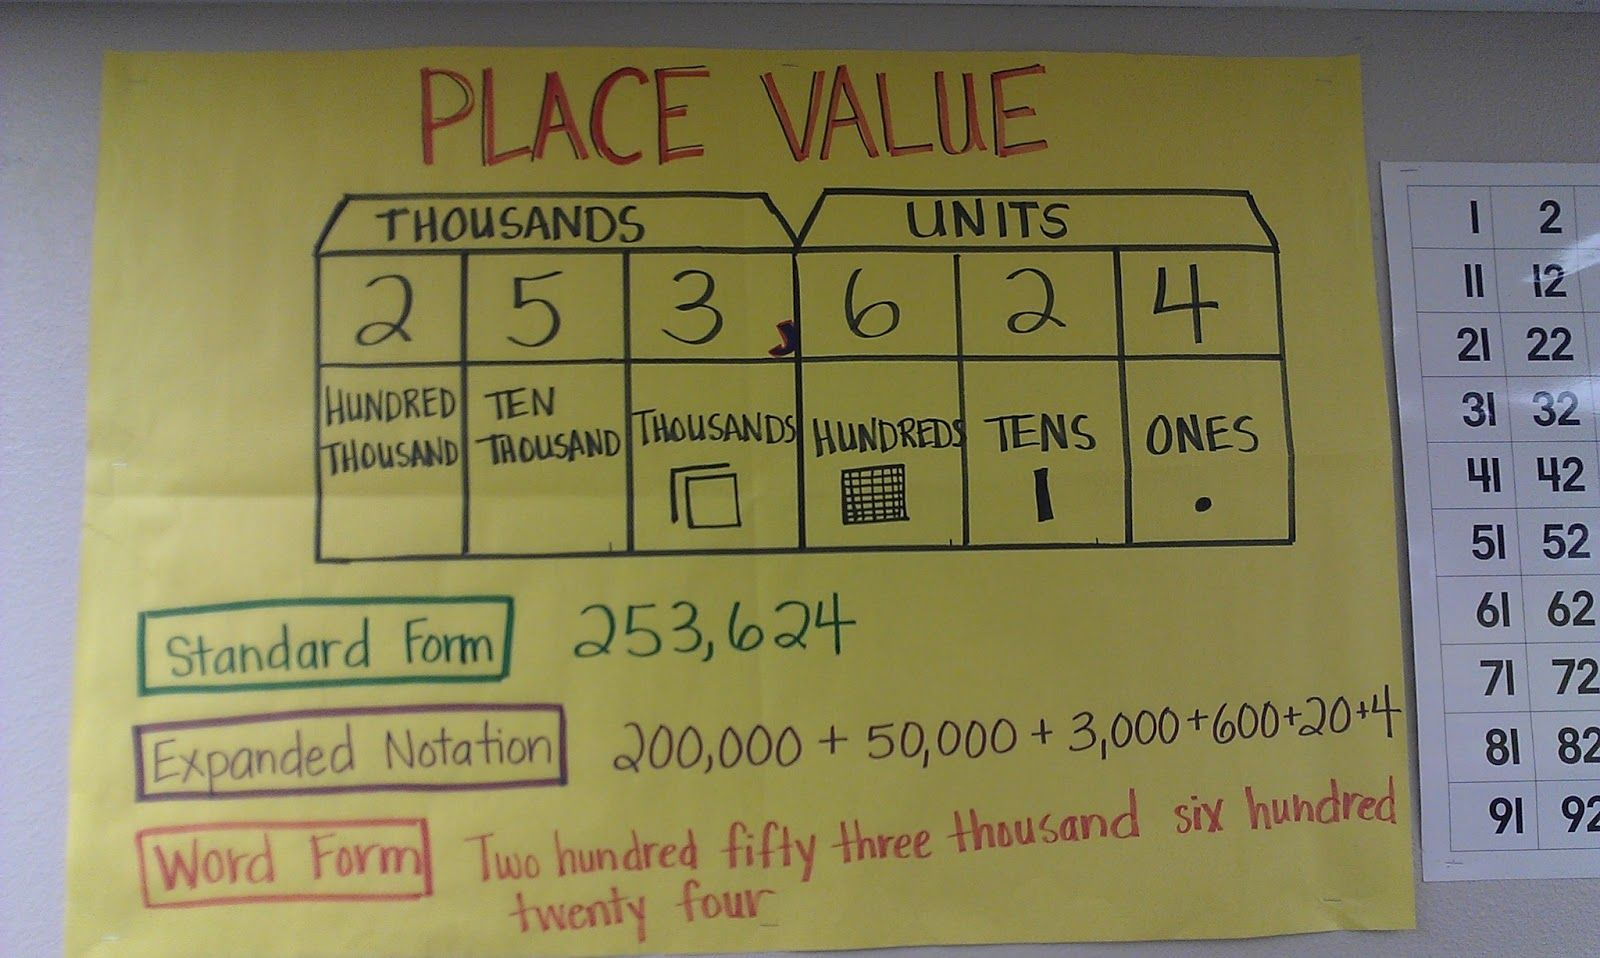 Place Value Chart Maybe On Maths Wall As A Visual Aid Like The Expanded Notation Element Math School Teaching Math Education Math [ 958 x 1600 Pixel ]